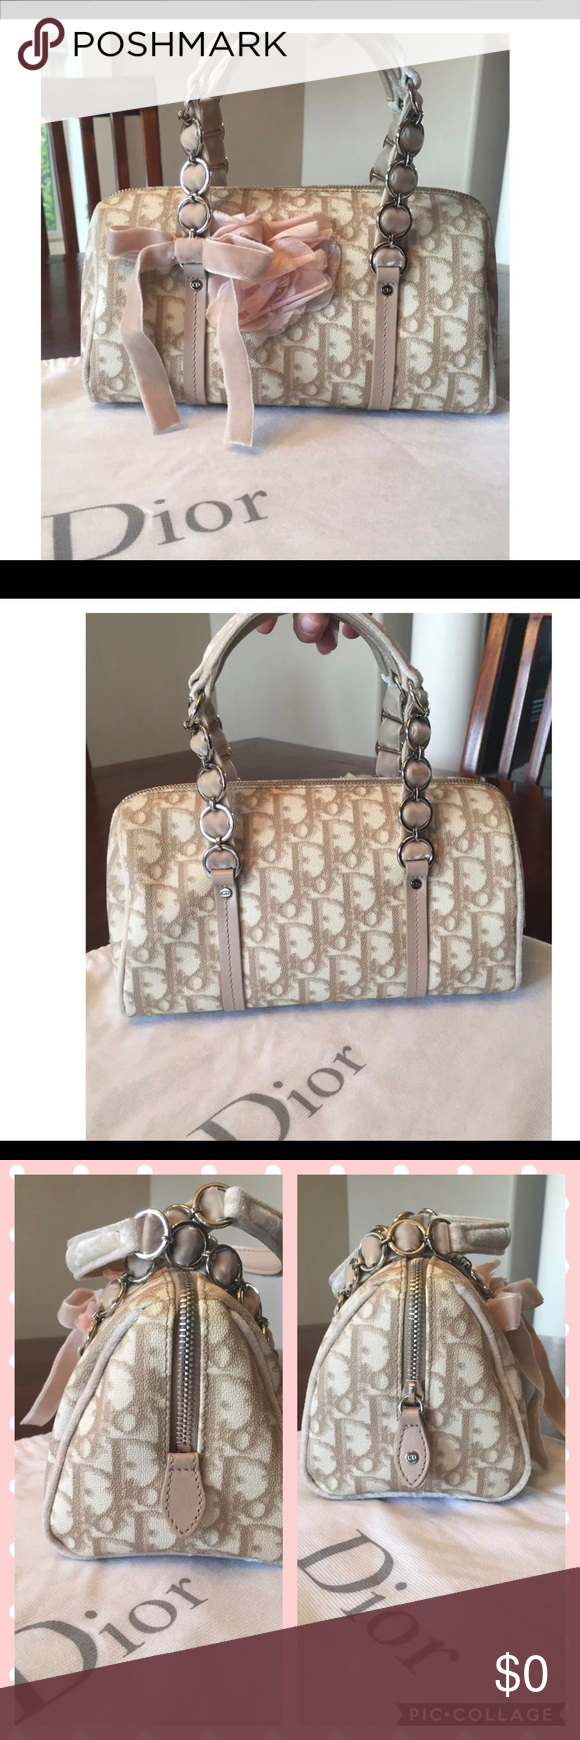 Christian Dior Diorissimo Bag😍 Christian Dior Diorissimo Romantic Trotter  Bag with Velvet Bow and Delicate Pink Flower. Zipper from one side to other  for ... 3d1548ed5f642